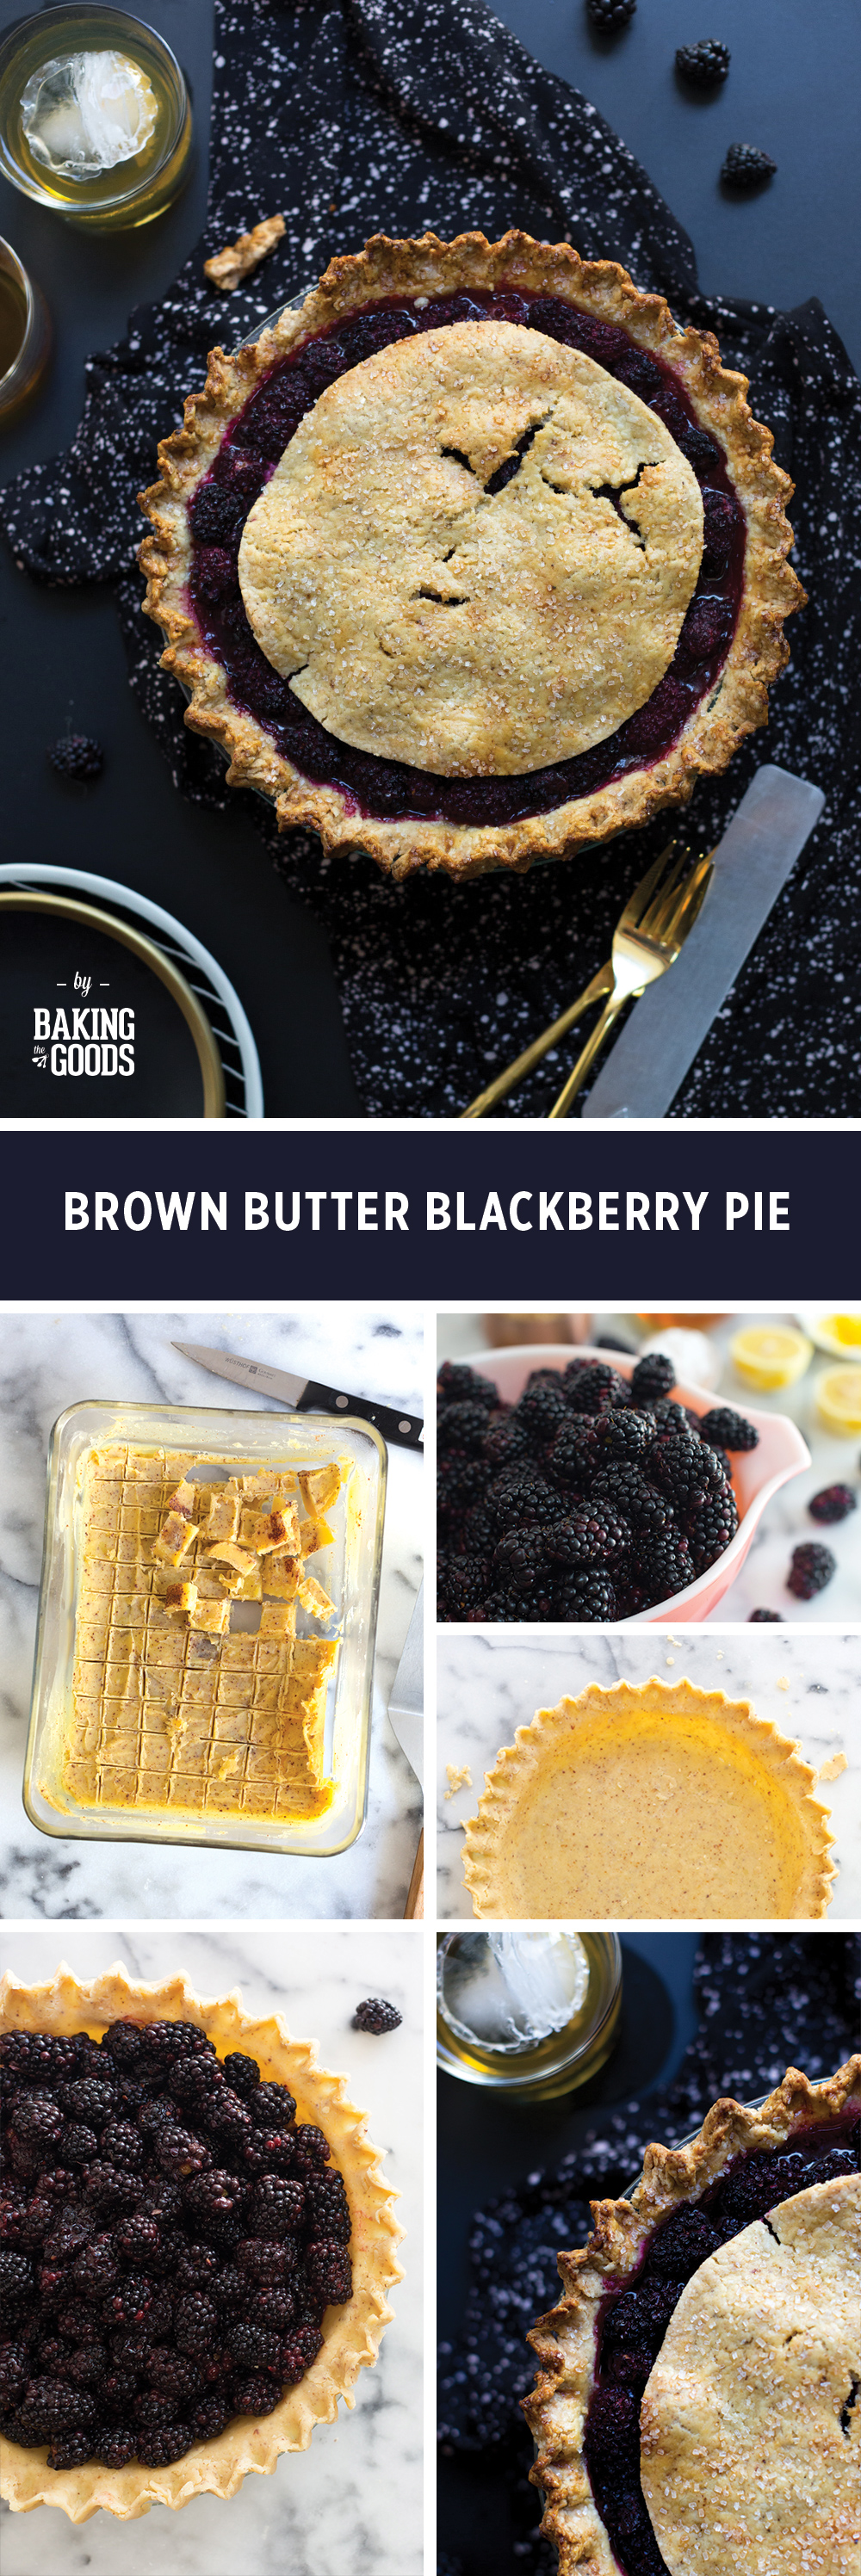 Brown Butter Blackberry Pie by Baking The Goods